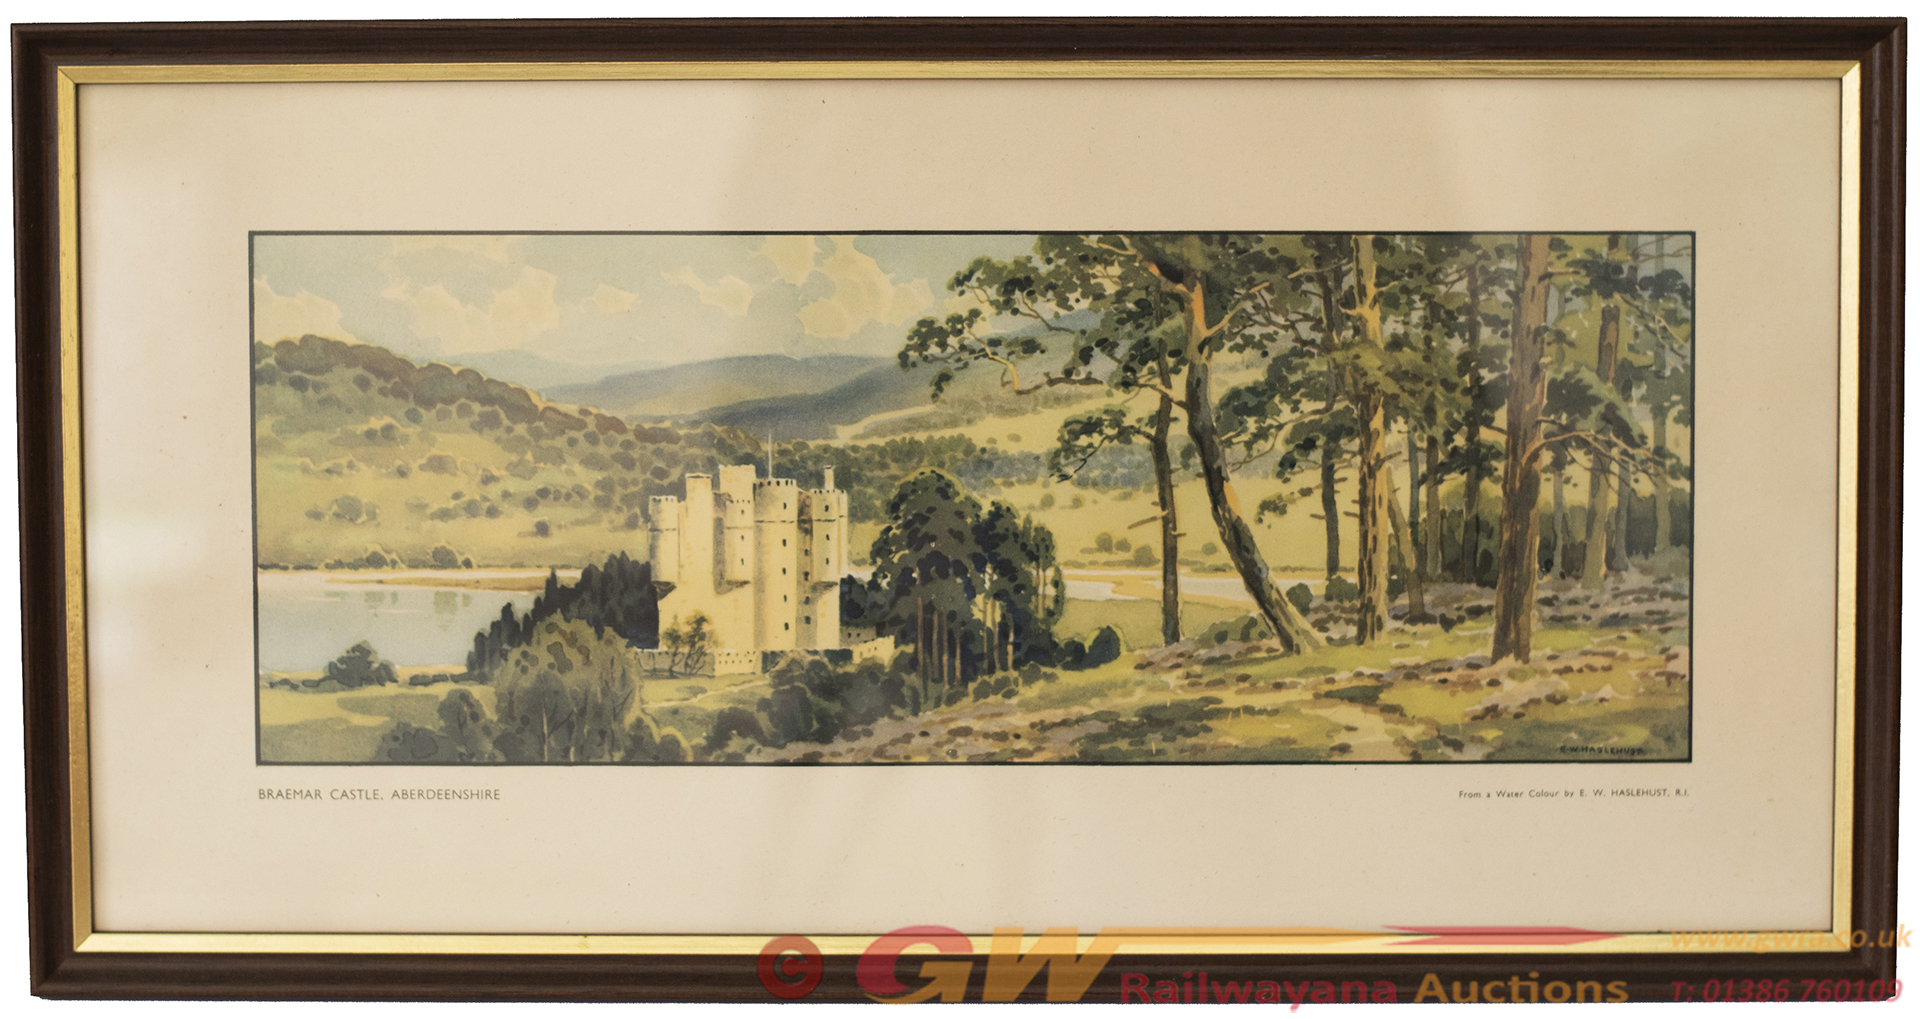 Carriage Print BRAEMAR CASTLE ABERDEENSHIRE By